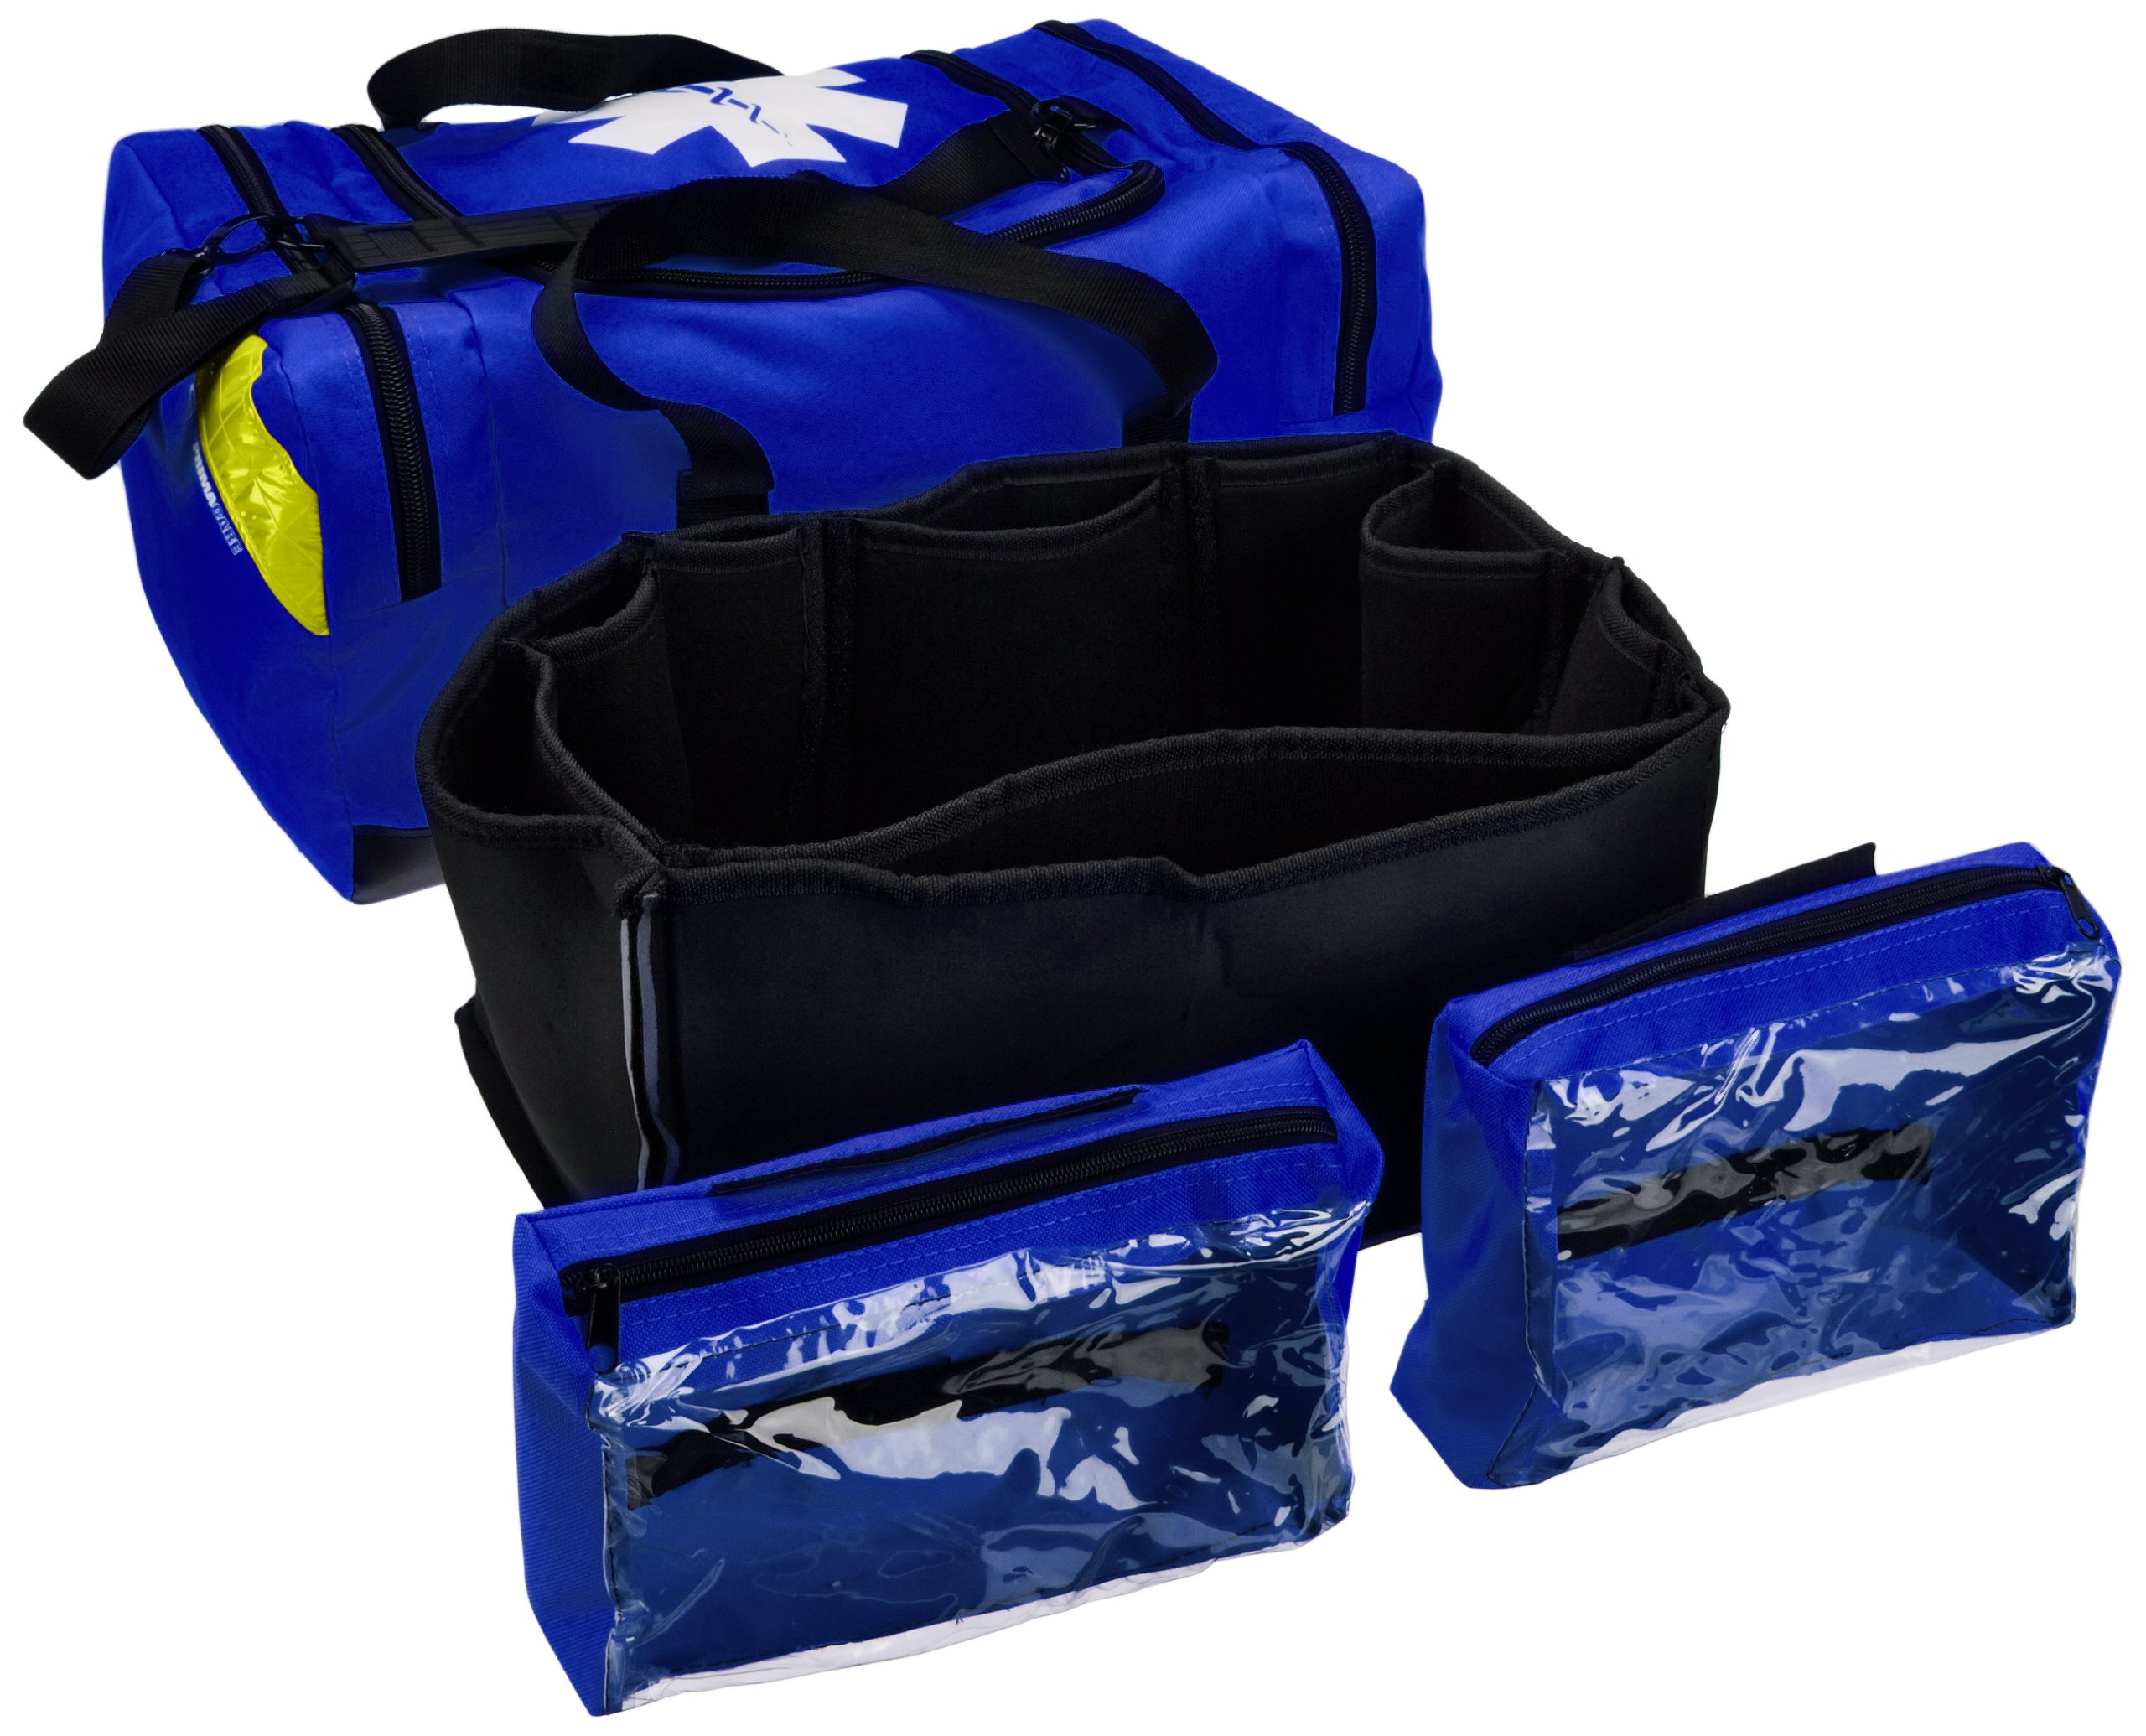 Primacare KB-4135-B First Responder Bag, 9'' Height x 21'' Width x 12'' Depth, Blue by Primacare